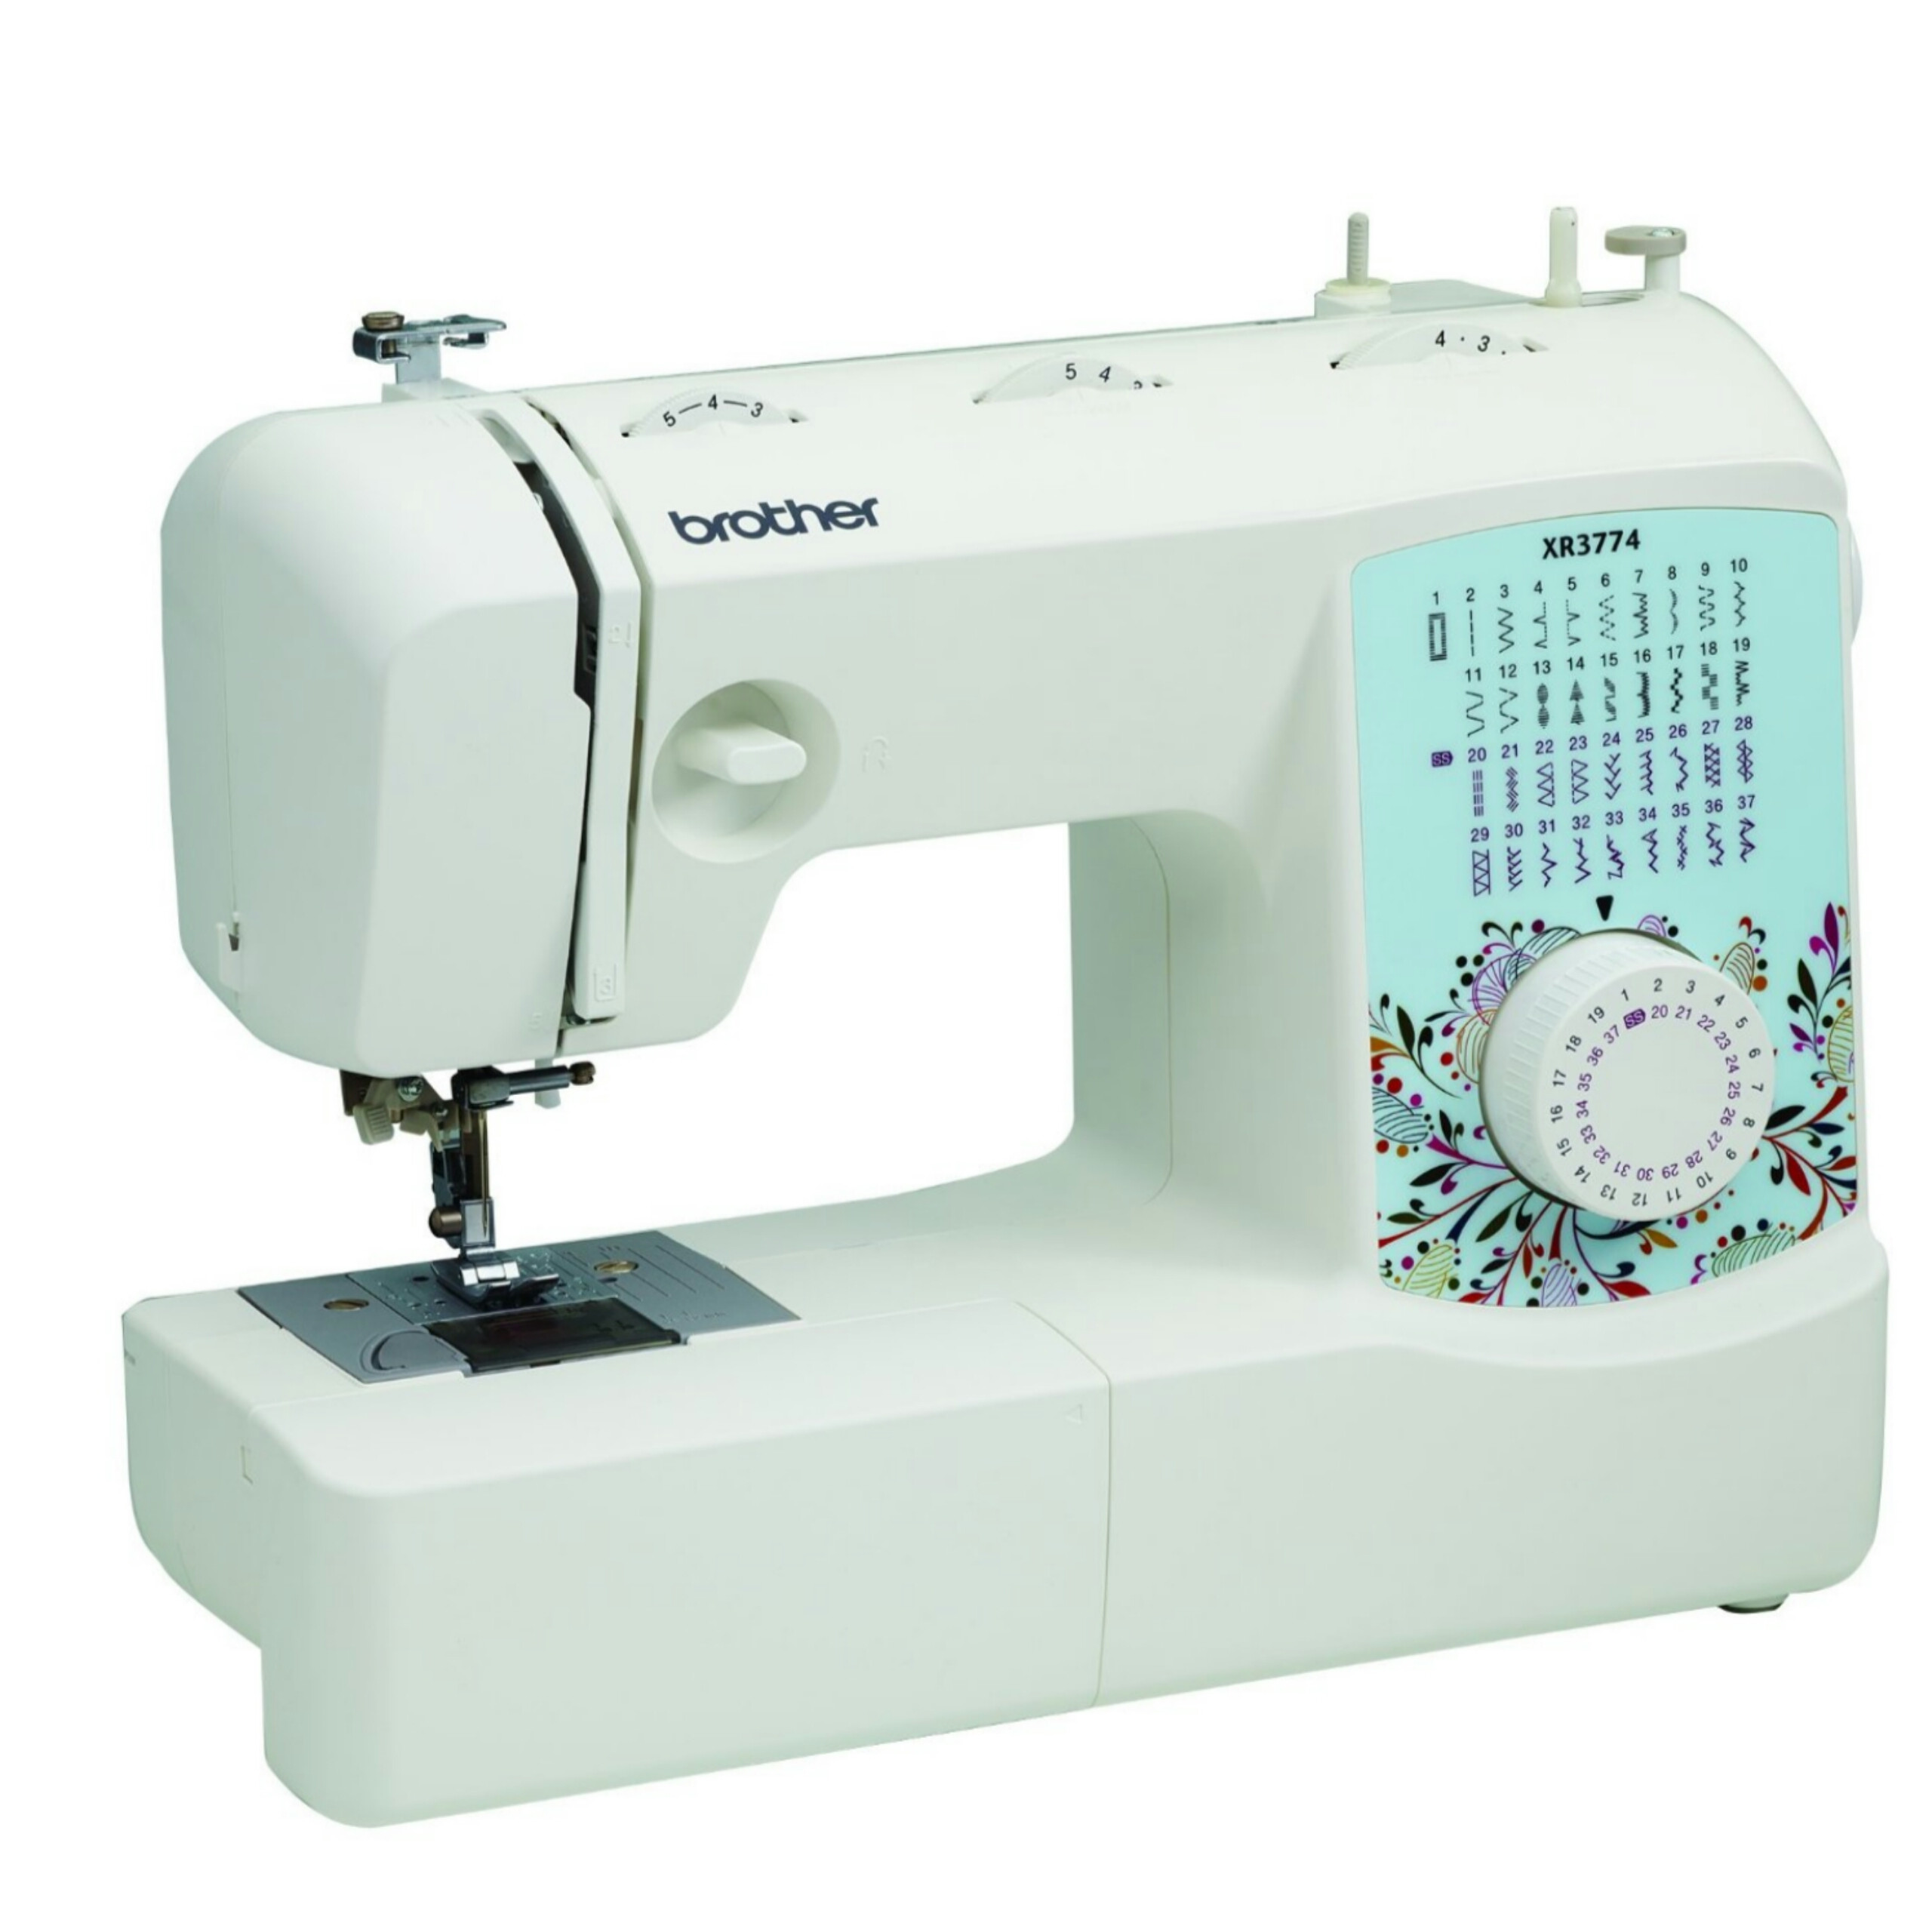 Sewing and Embroidery Machine Luxury Best Brother Sewing Machines Reviews 2017 Sewing Makes Of Unique 48 Pics Sewing and Embroidery Machine